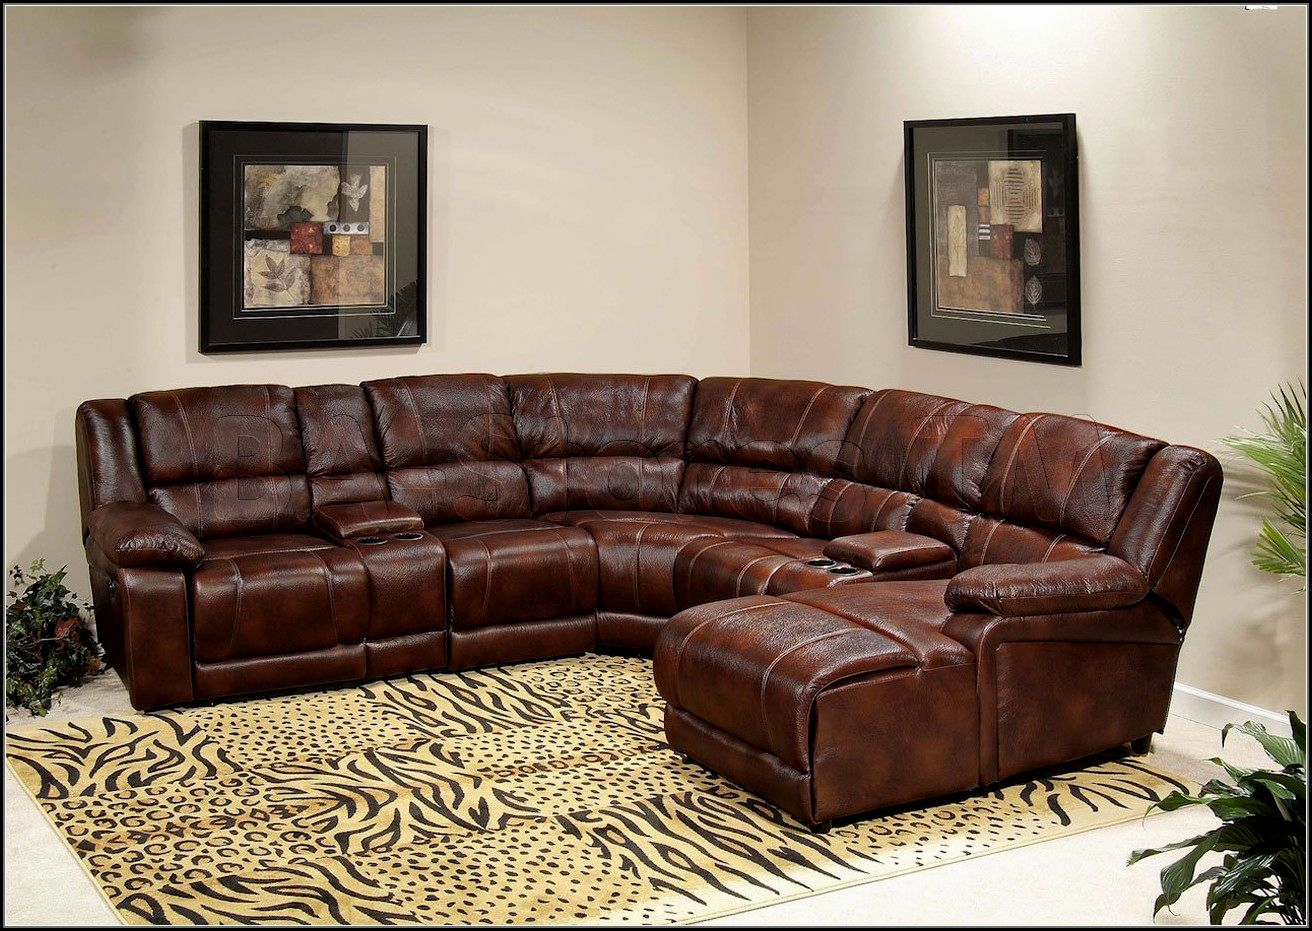 elegant electric recliner sofa design-Luxury Electric Recliner sofa Image